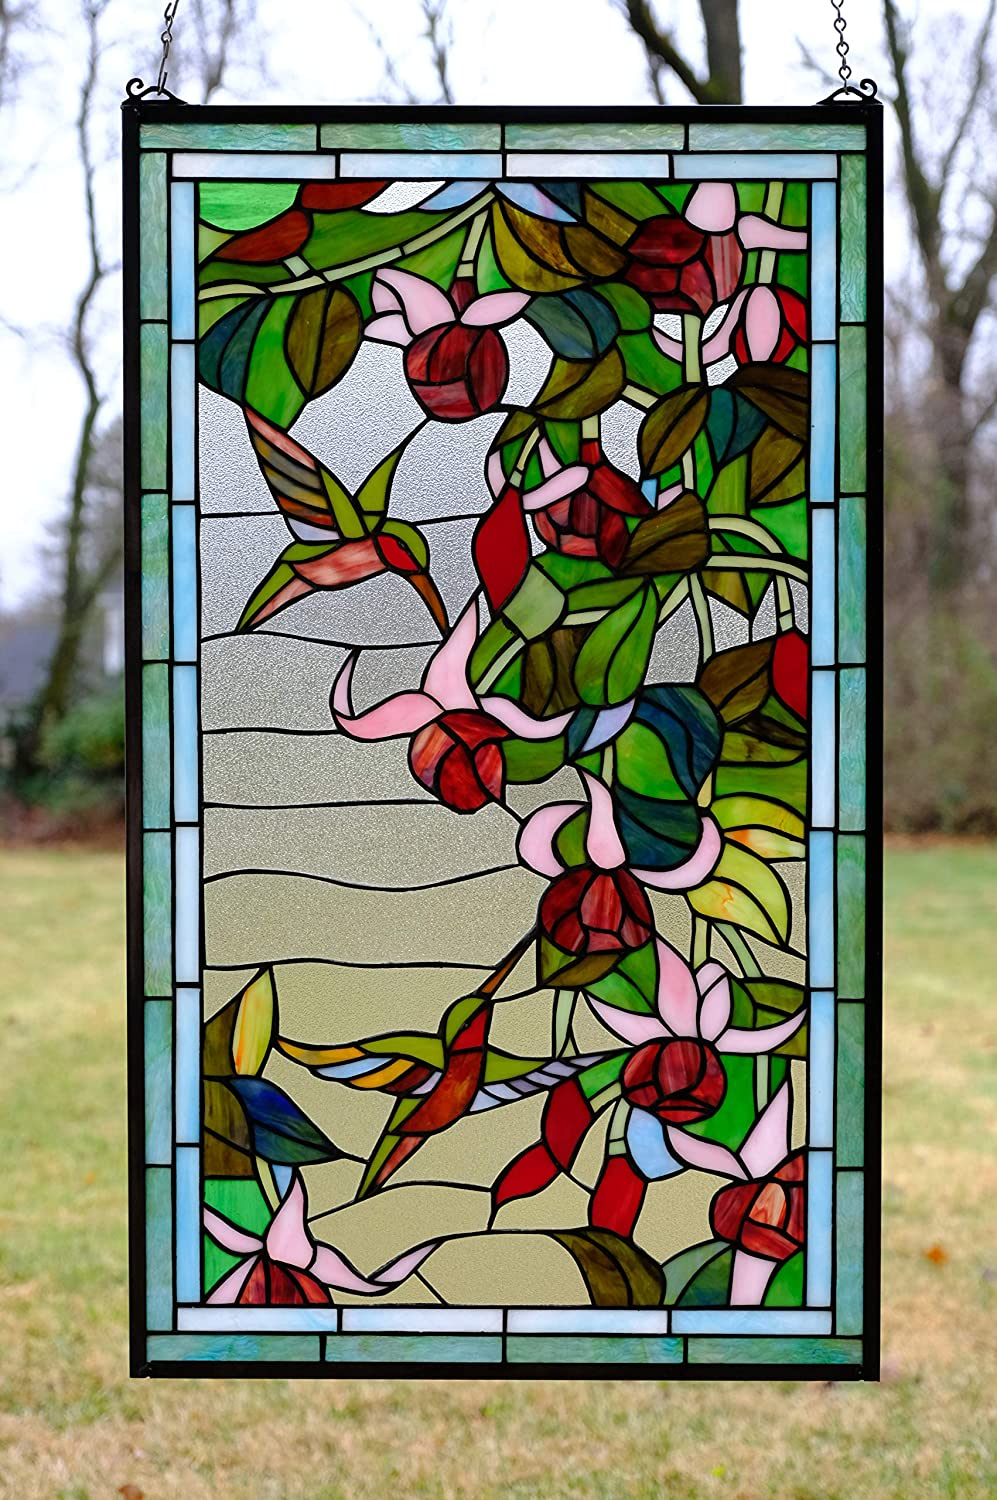 20 25 X 34 Large Tiffany Style Stained Glass Window Panel Hummingbirds Flowers Home Kitchen